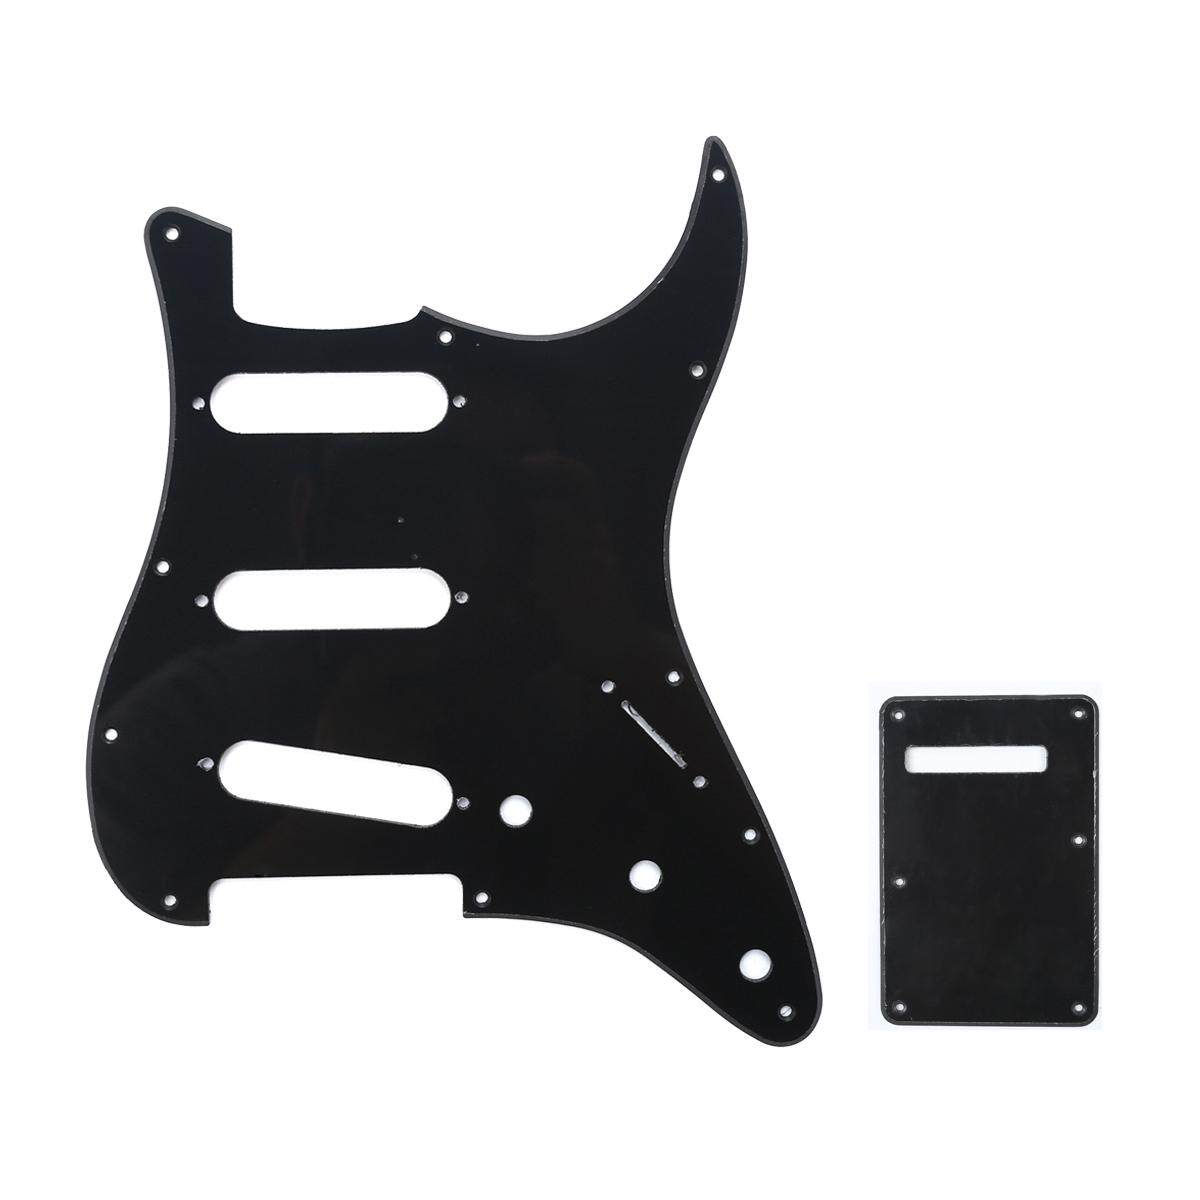 NEW GUITAR BACK PLATE FOR FENDER STRATOCASTER GUITAR CREAM PARCHMENT